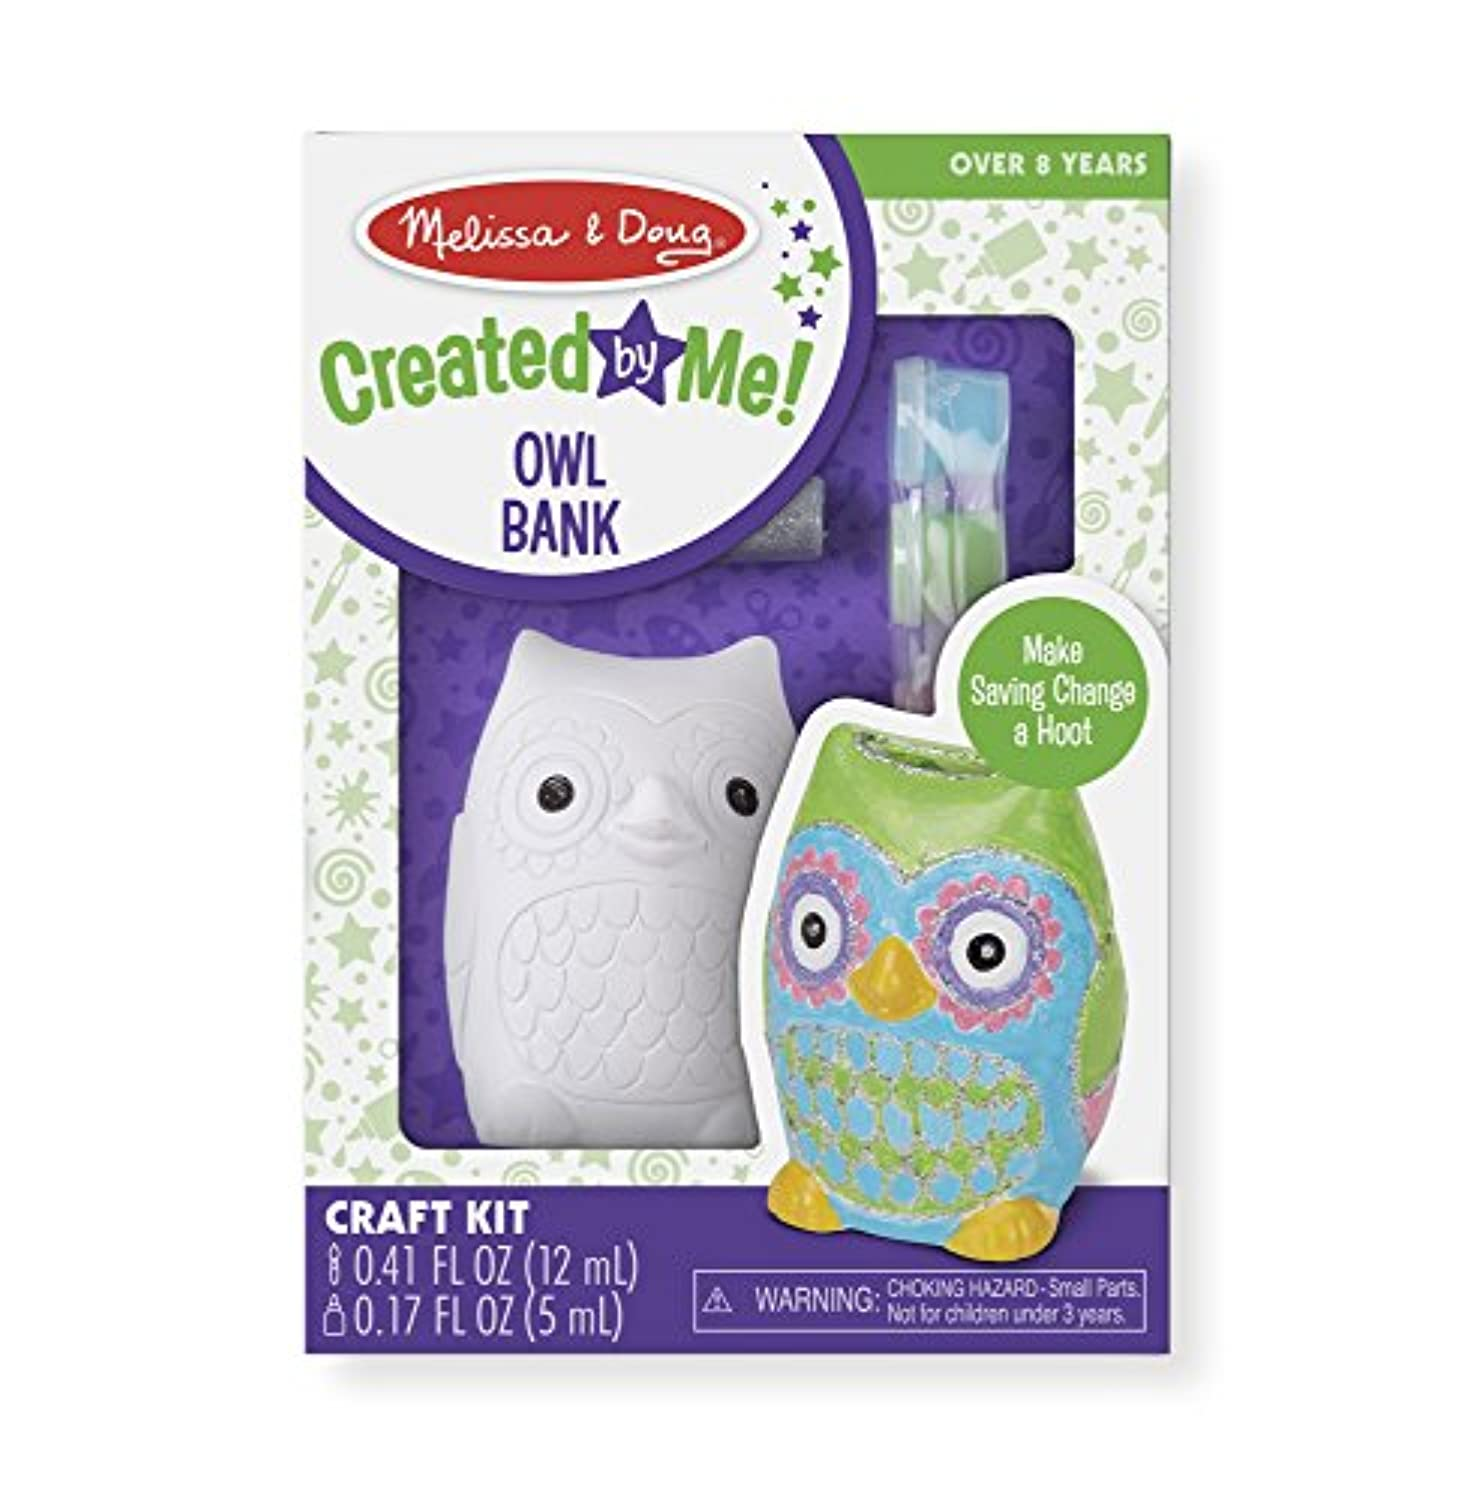 Melissa & Doug decorate-your-own Owl Bankクラフトキット